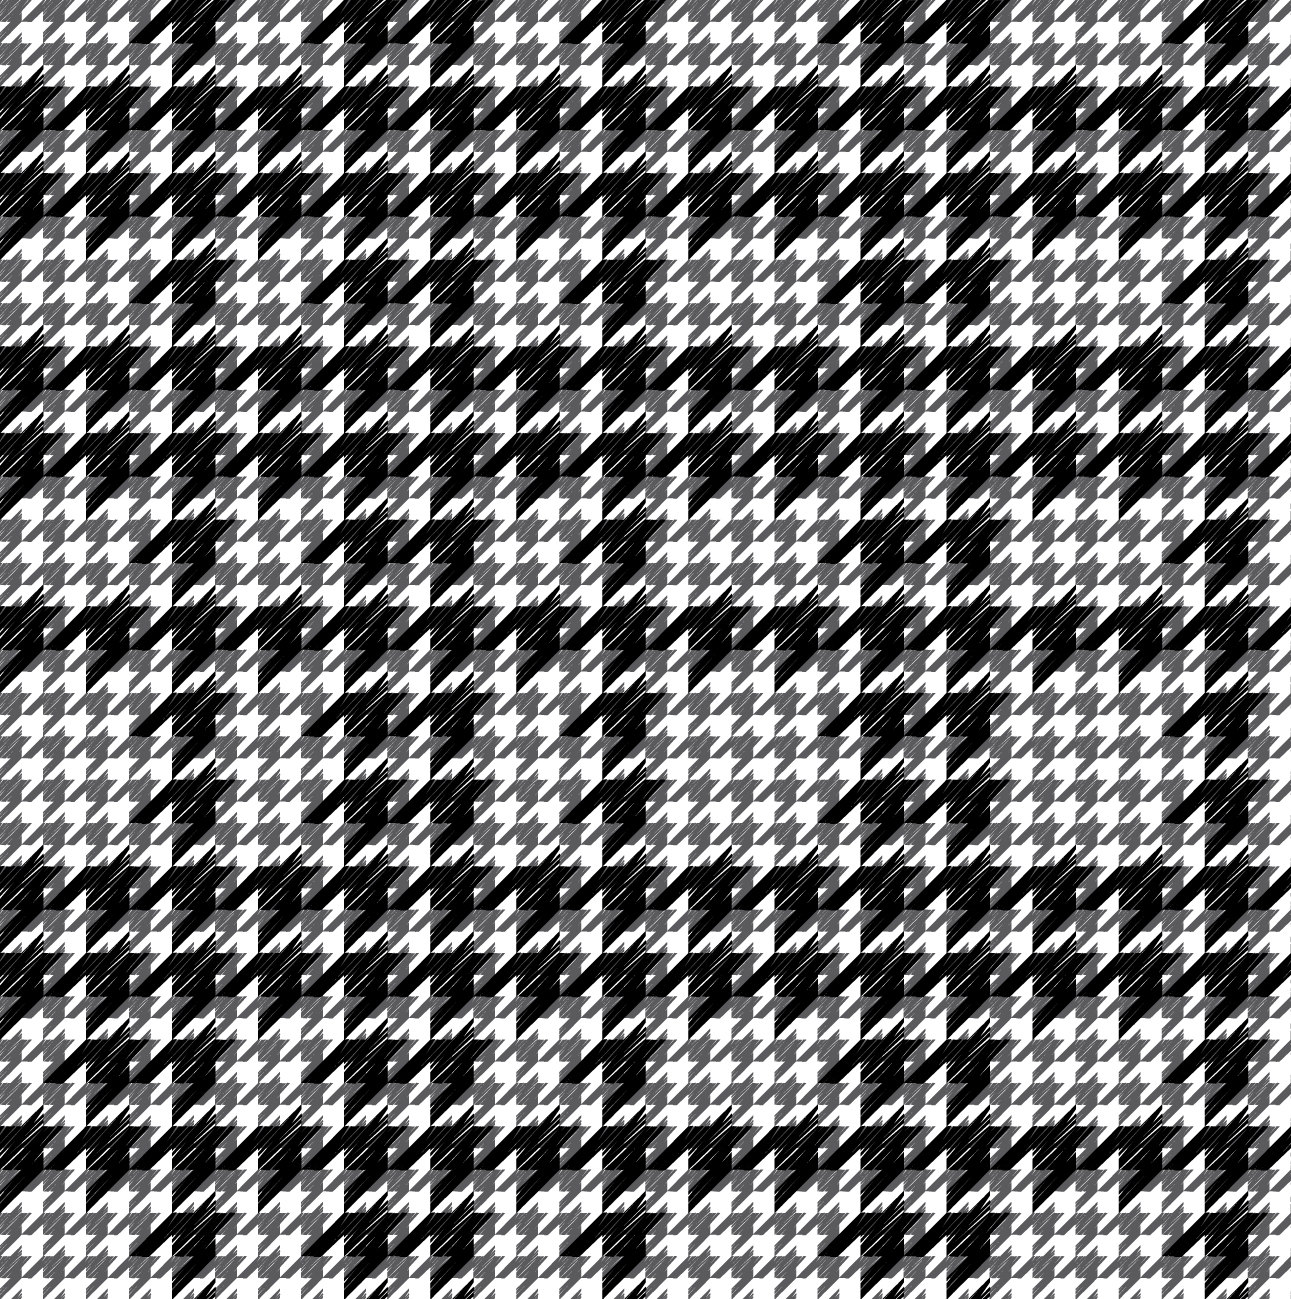 Free Vector Black and White Houndstooth Patterns